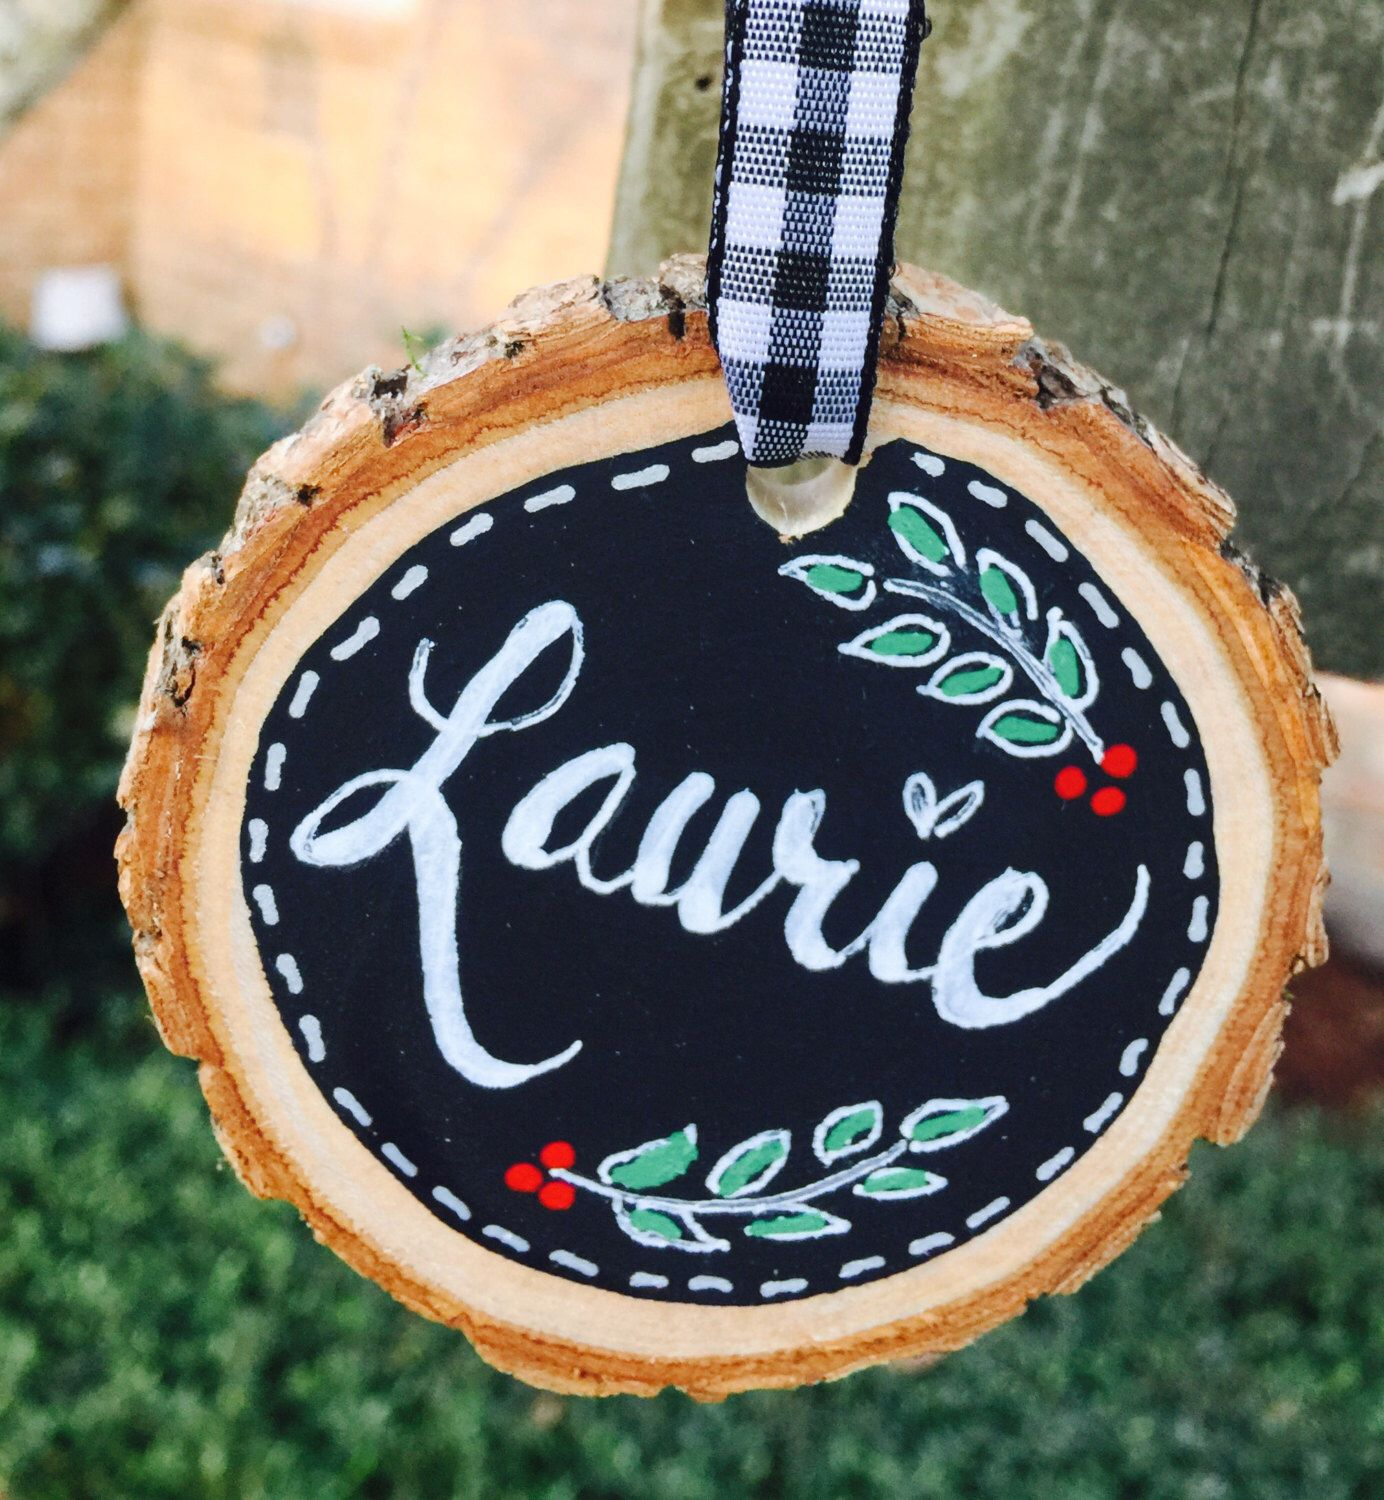 New home ornaments personalized - Personalized Christmas Ornament Log Wooden Disk Chalk Art Sliced Wood Gift Tag Ornament Chalk Paint Ornament New Home New Baby Name By